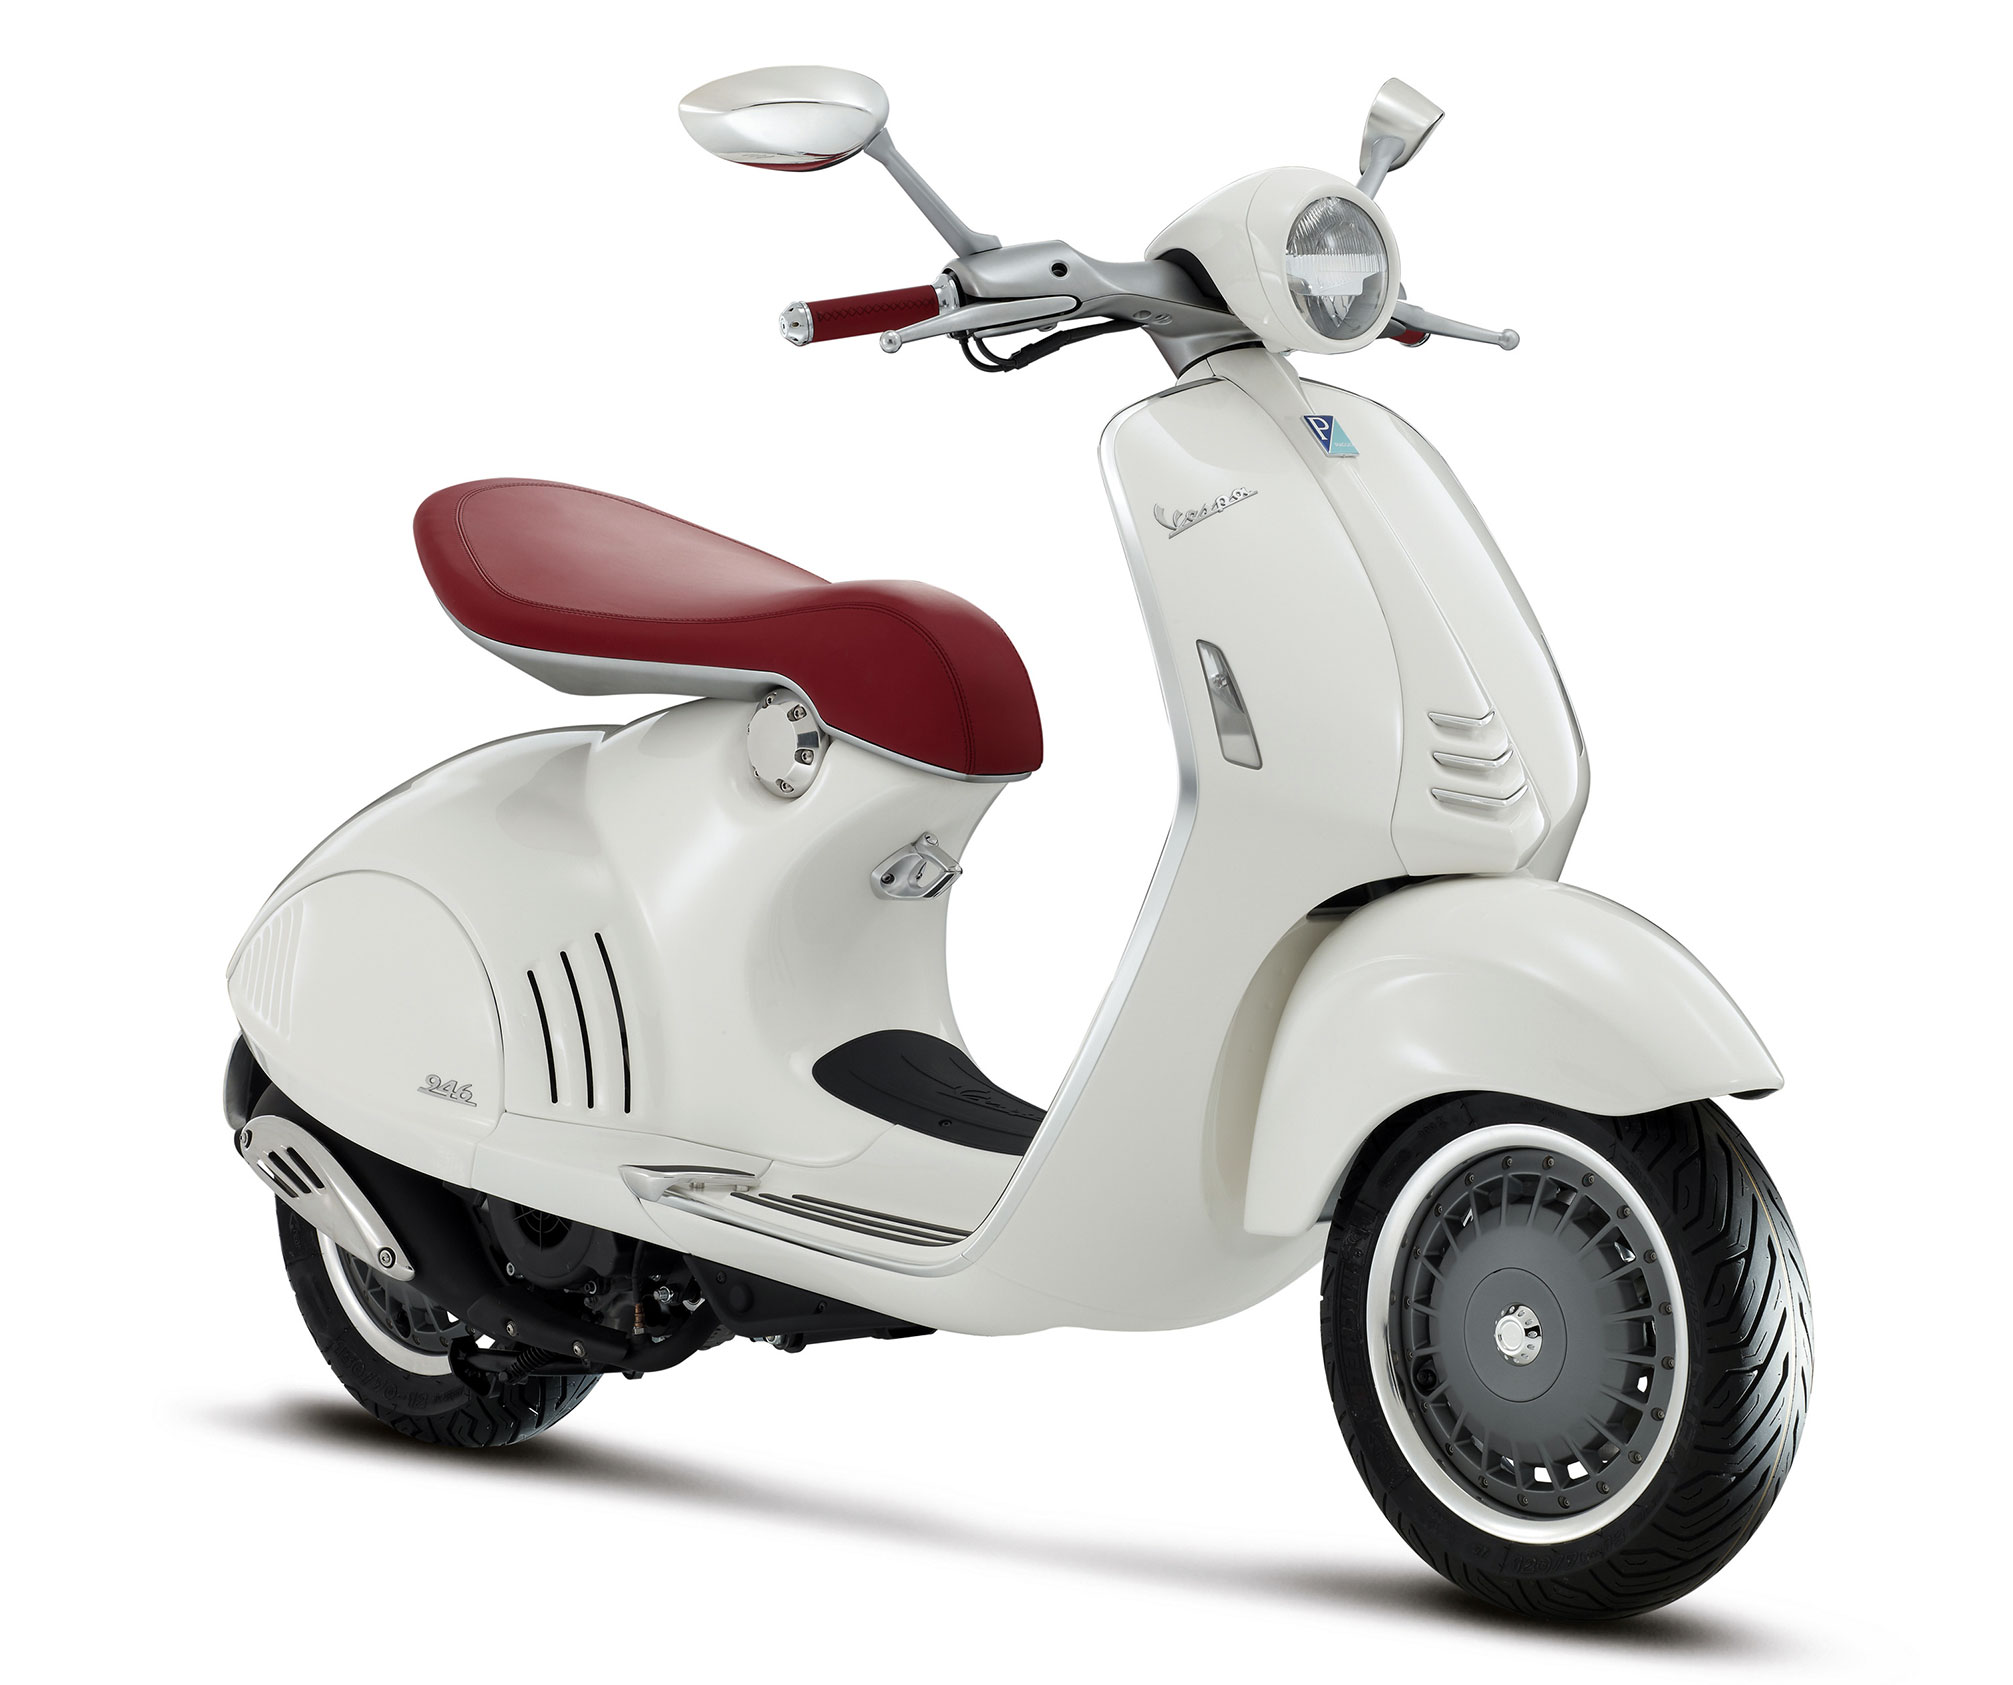 2013 vespa 946 scooter review. Black Bedroom Furniture Sets. Home Design Ideas